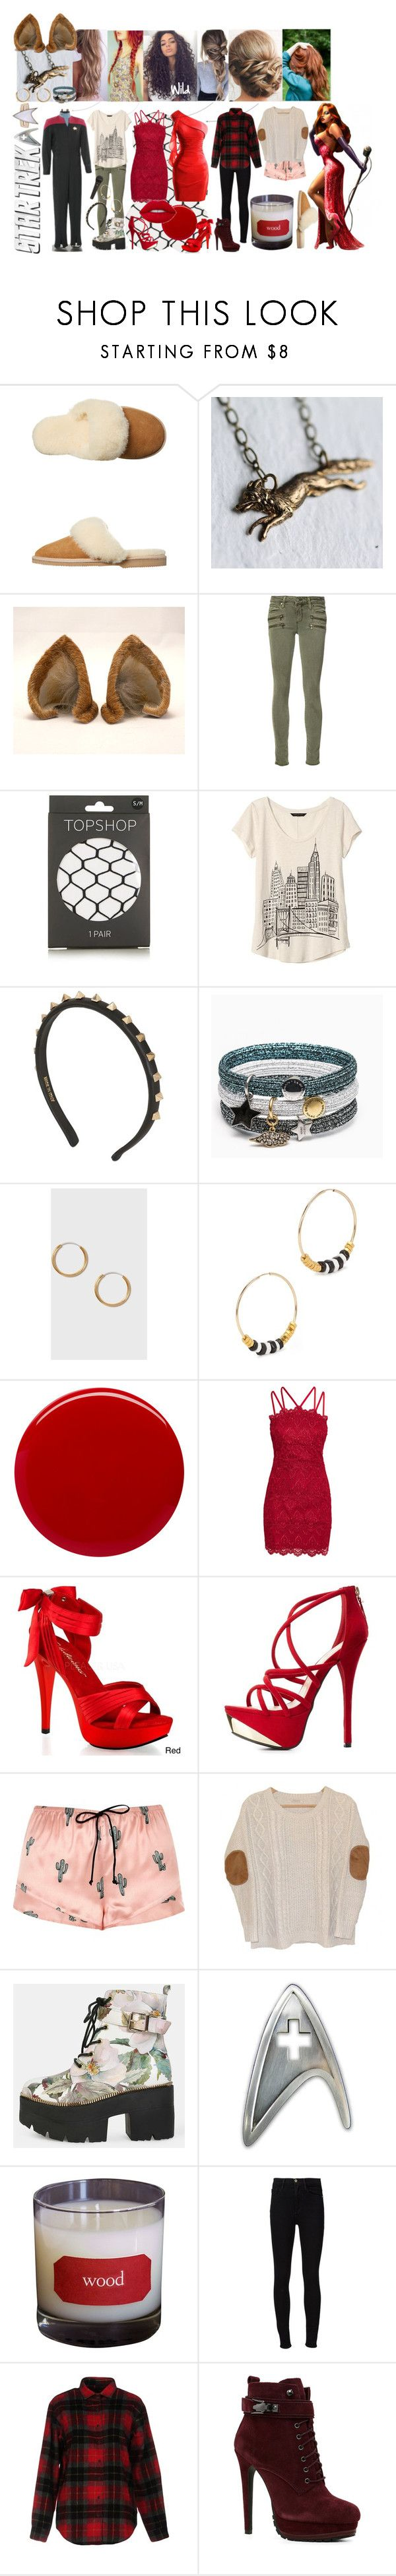 """Tara London"" by rainbowfashionunicorn ❤ liked on Polyvore featuring UGG, And Mary, Paige Denim, Topshop, Banana Republic, Valentino, Marc Jacobs, Alice Menter, Margaret Dabbs and Pleaser"